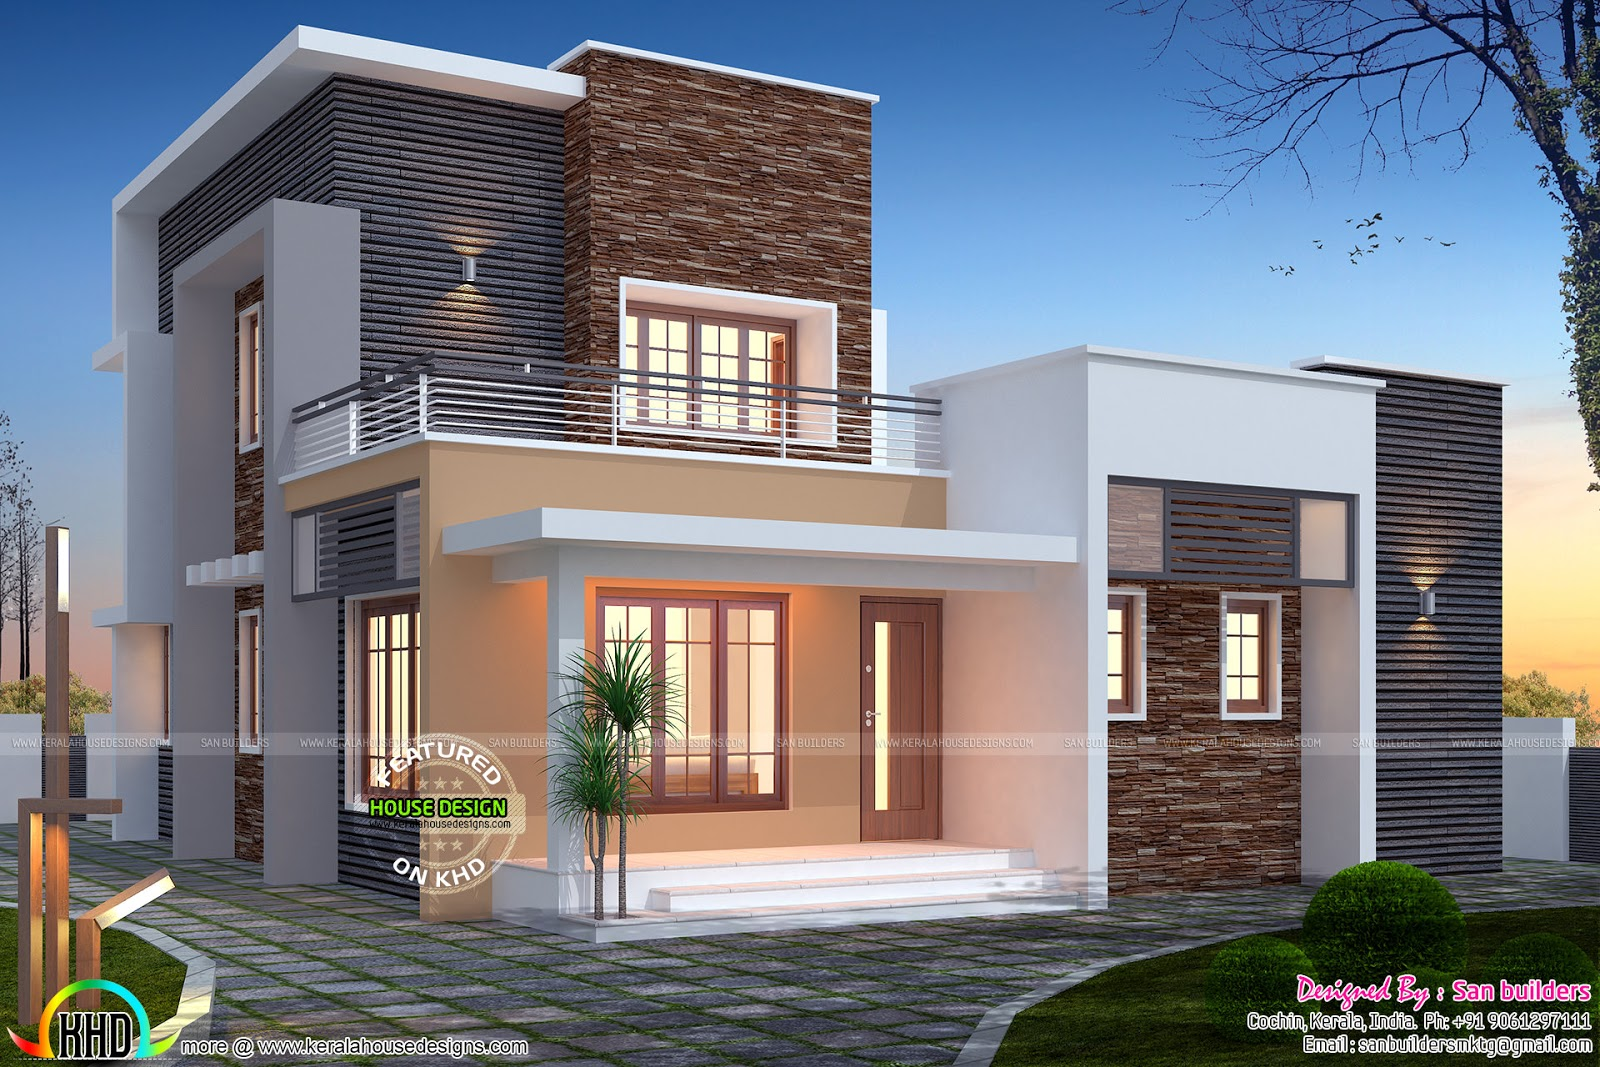 3 bedroom flat roof 1516 sq ft home kerala home design for Flat roof elevation